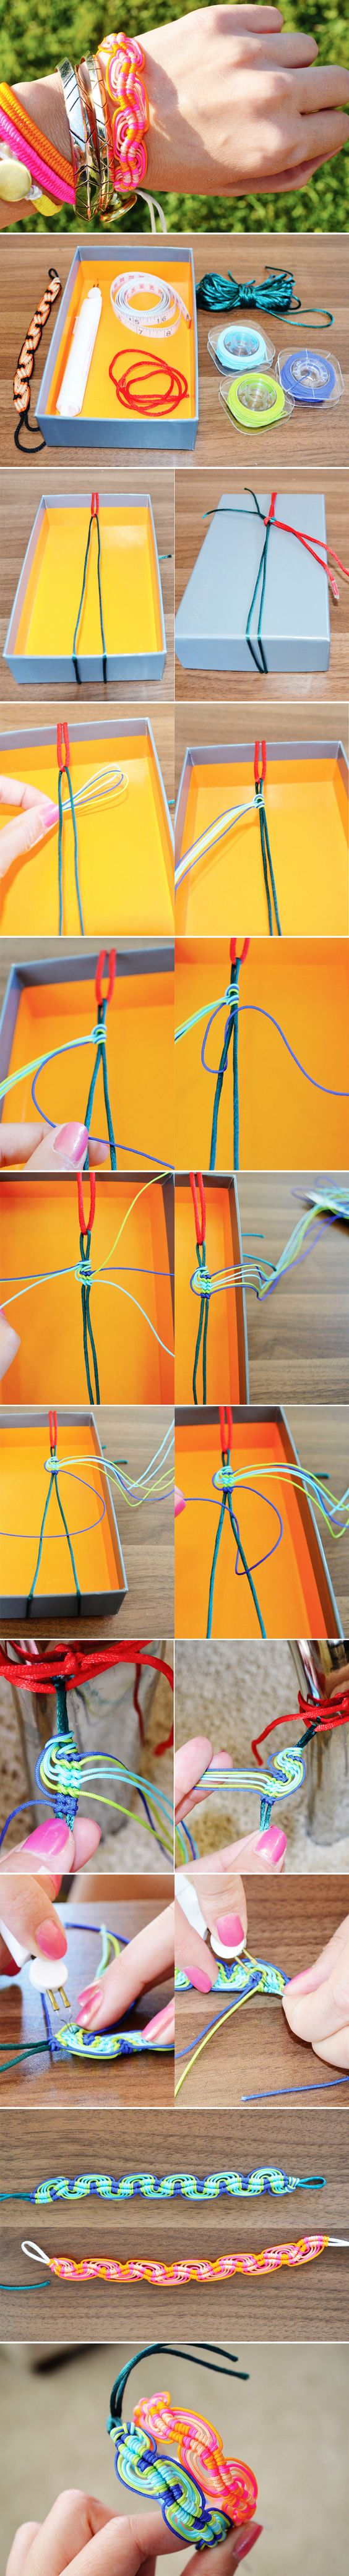 Wavy Friendship Bracelet - Tutorial